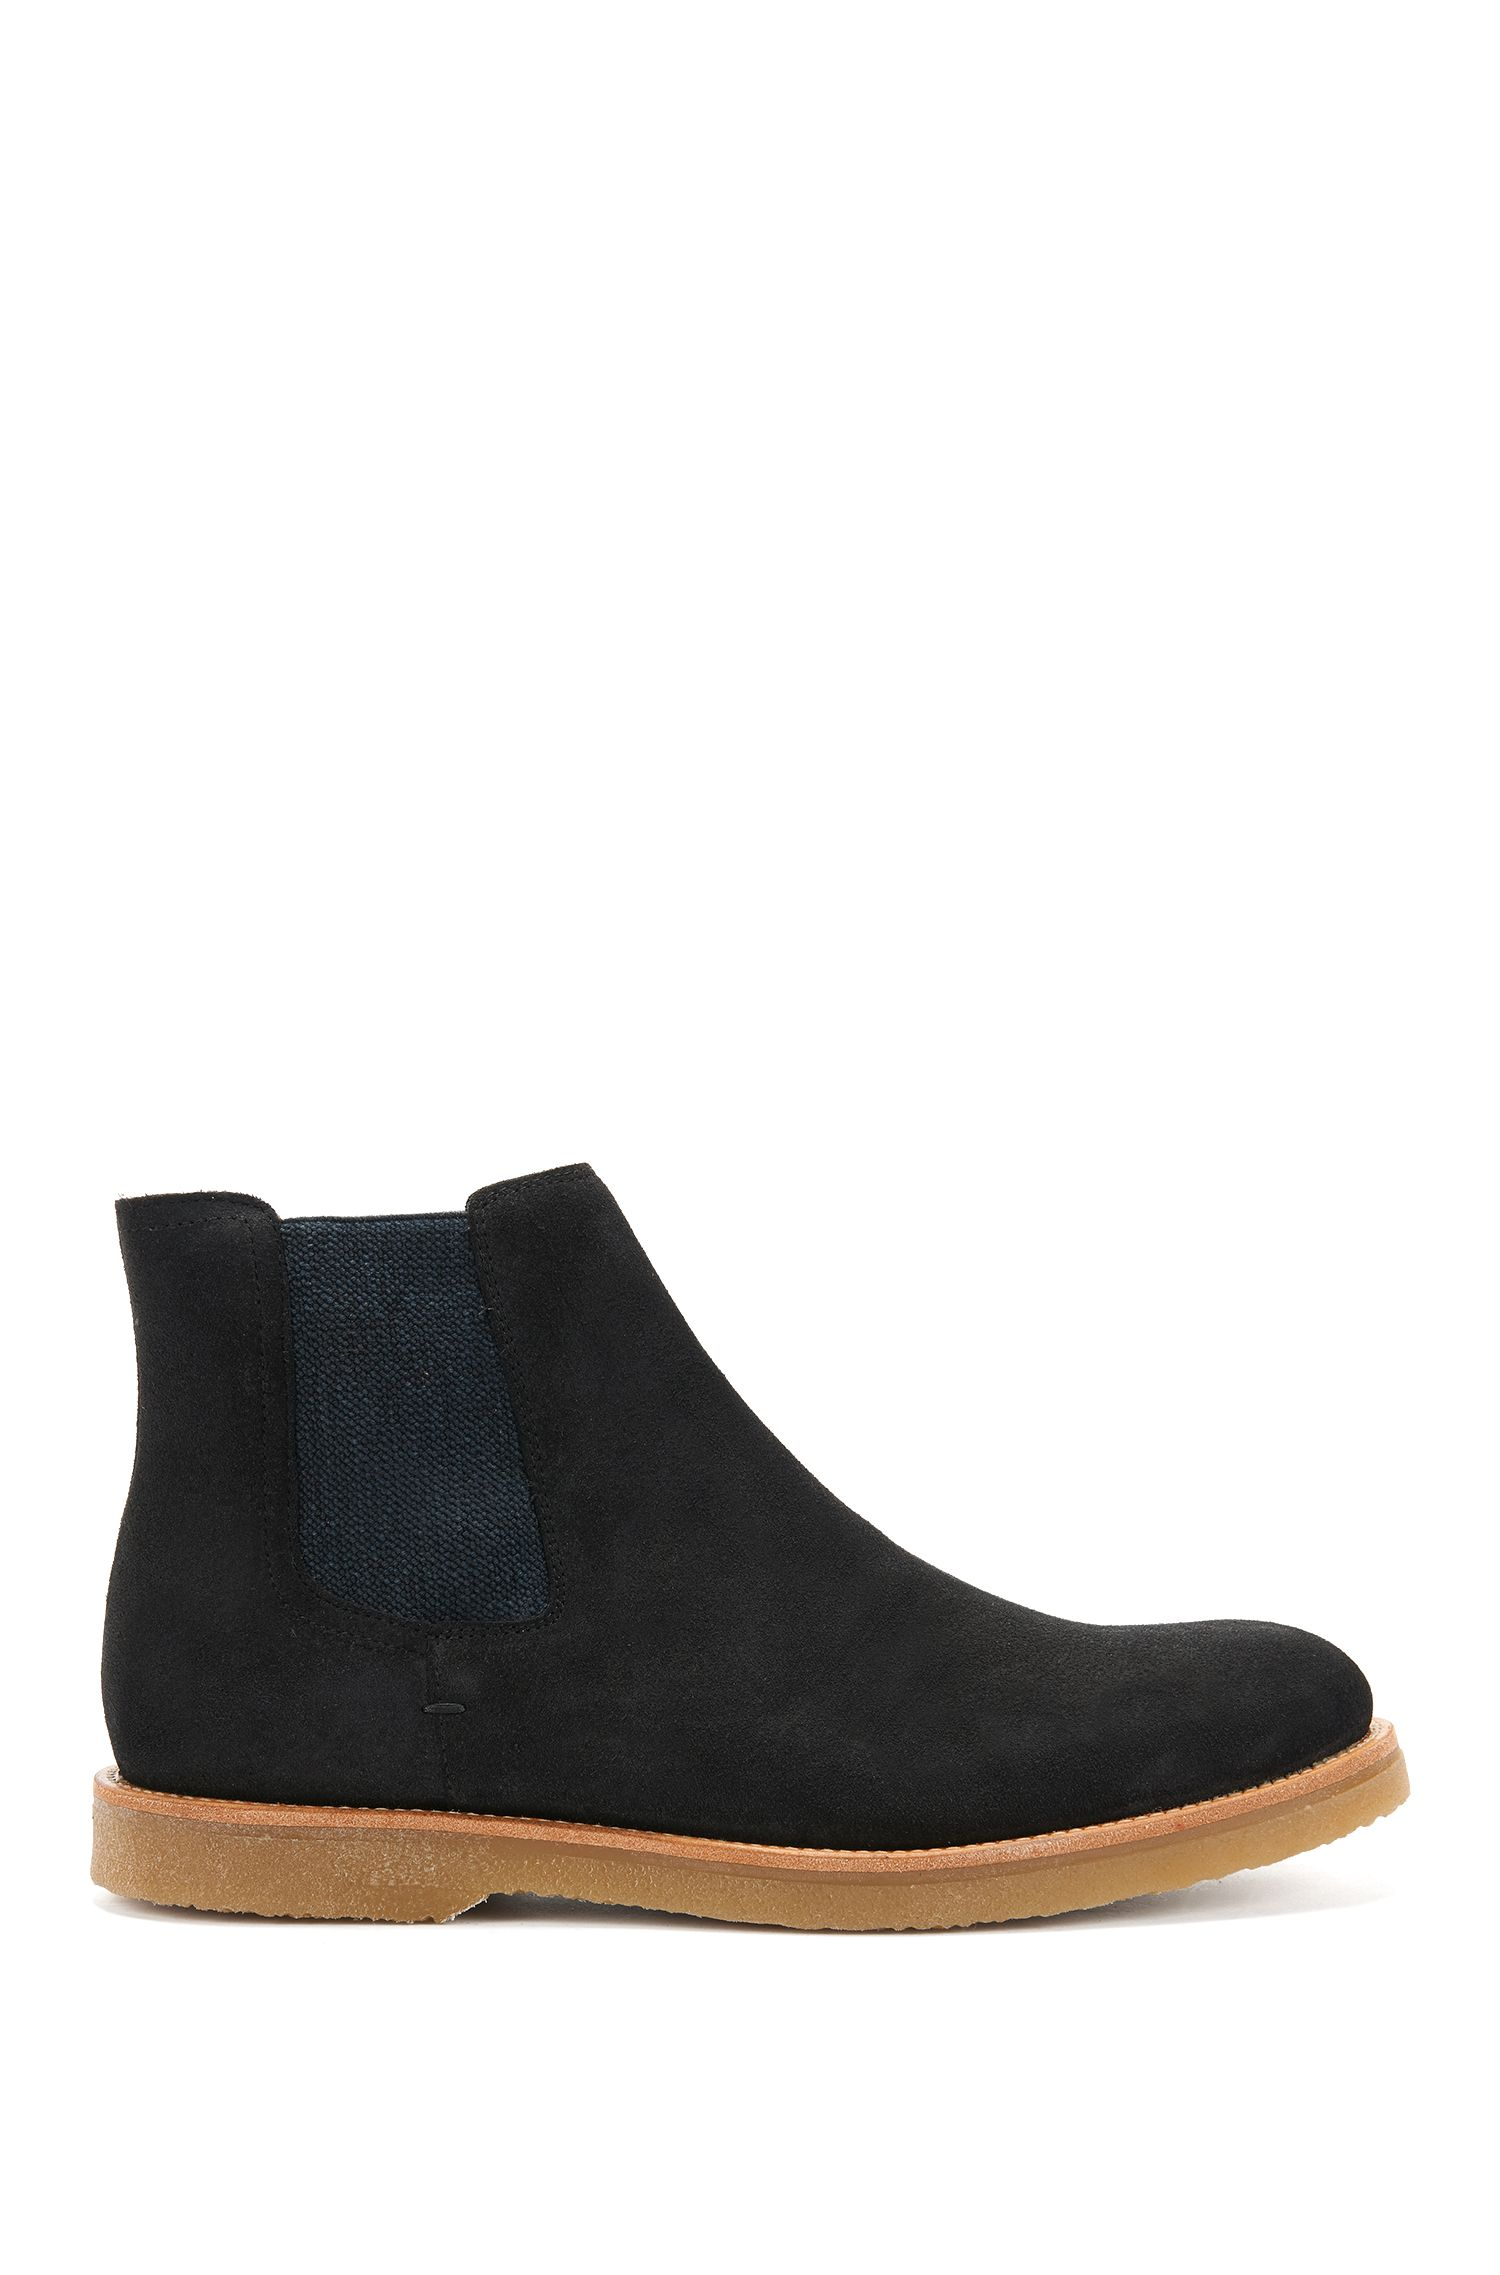 Suede Chelsea boots with rubber soles